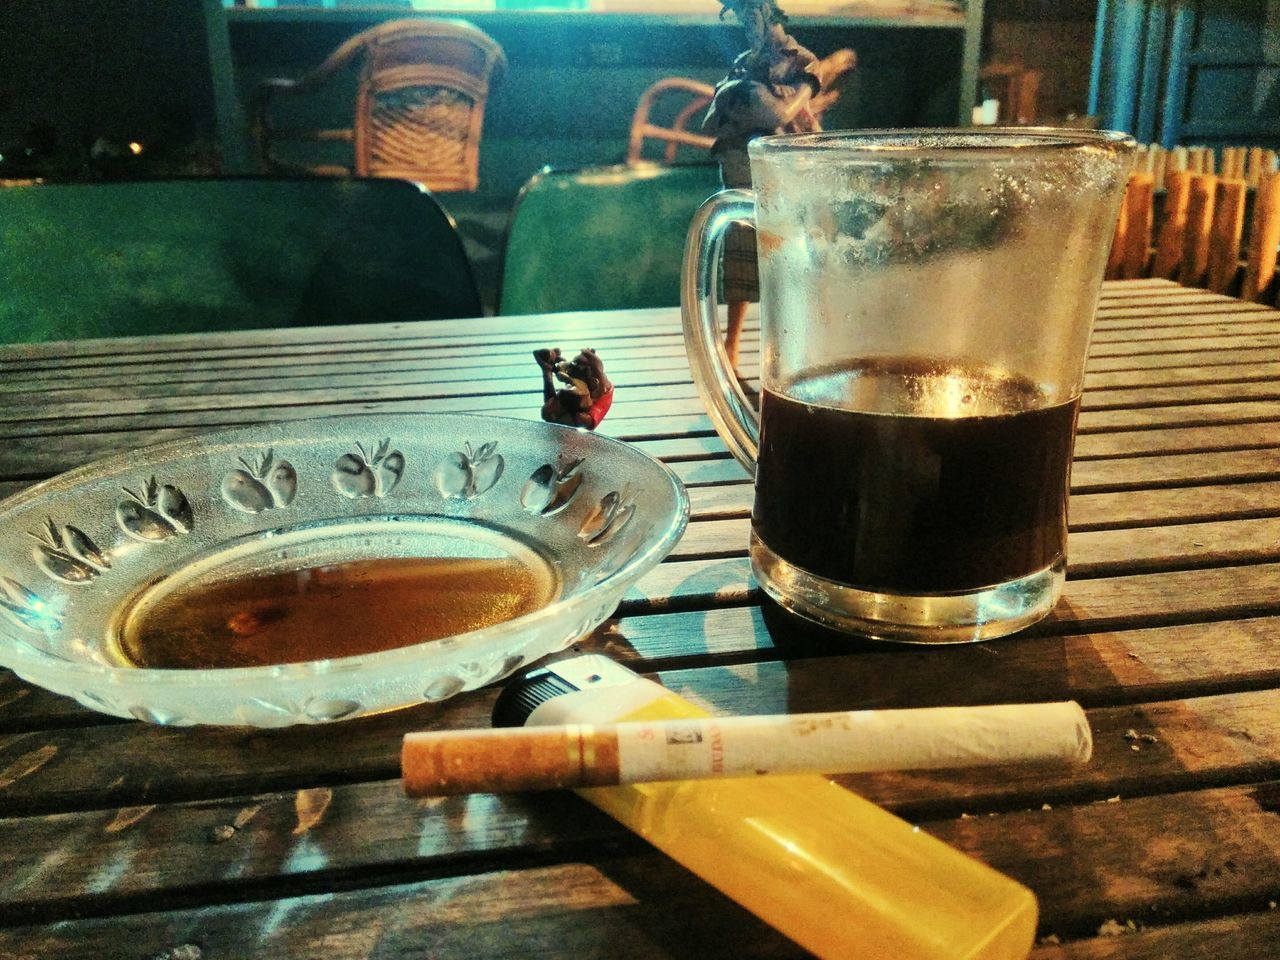 Indonesian black coffe and cigarette Drink Refreshment Drinking Glass Coffee - Drink Indoors  Food And Drink Table Cocktail Day Alcohol Ice Cube No People Ashtray  Freshness Frothy Drink Close-up Looking At Camera Portrait Front View Water EyeEmNewHere